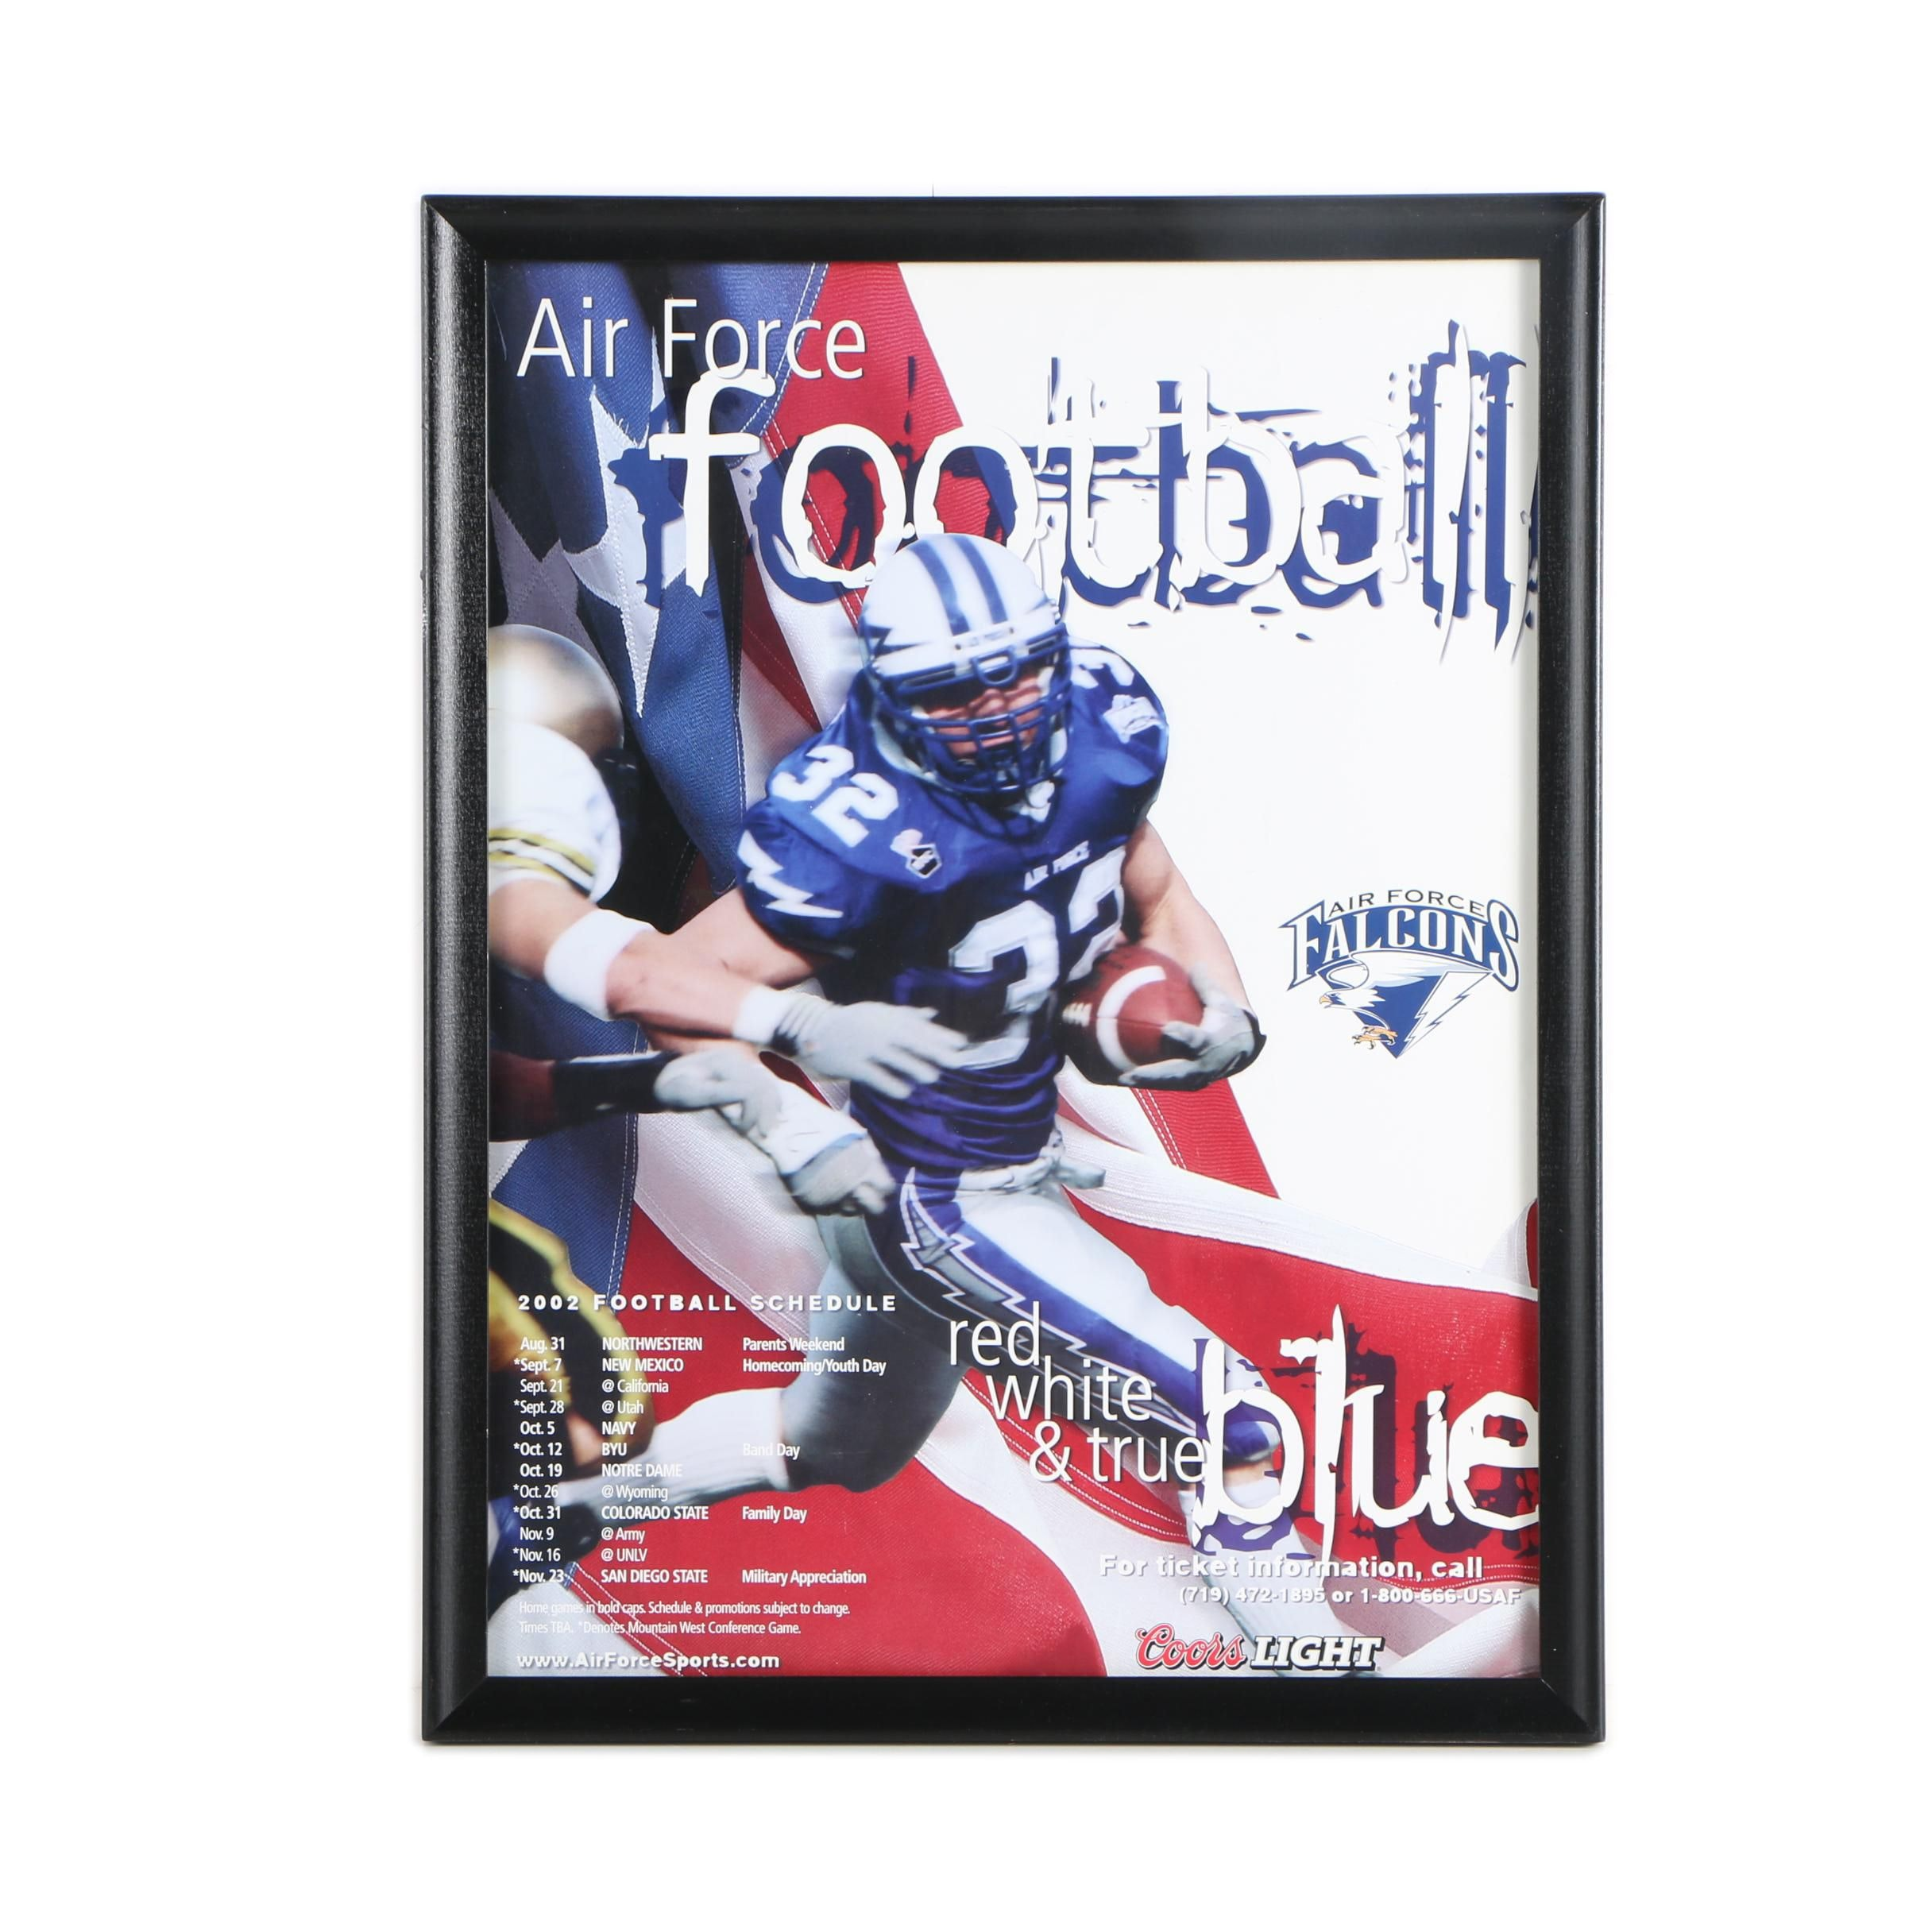 Offset Lithograph Poster on Paper for Air Force Falcons 2002 Schedule